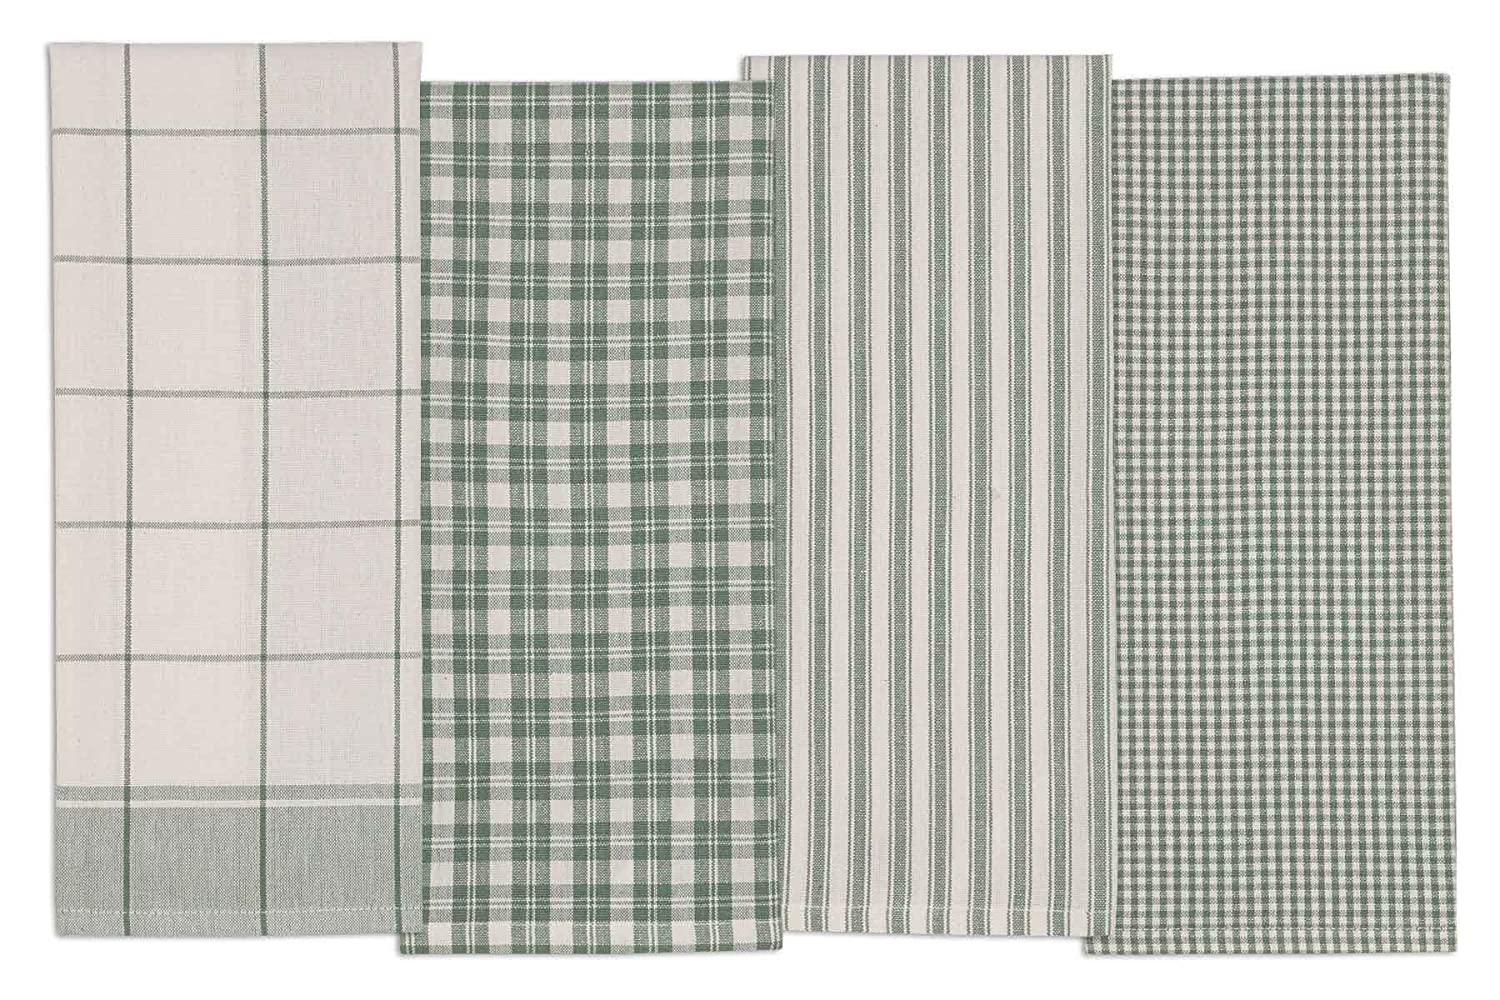 DII COSD35161 Cotton Dish, Set of 4, Decorative Oversized Towels, Perfect for Every Day Home Kitchen, Holidays and Housewarming Gifts, 18x28 Sage